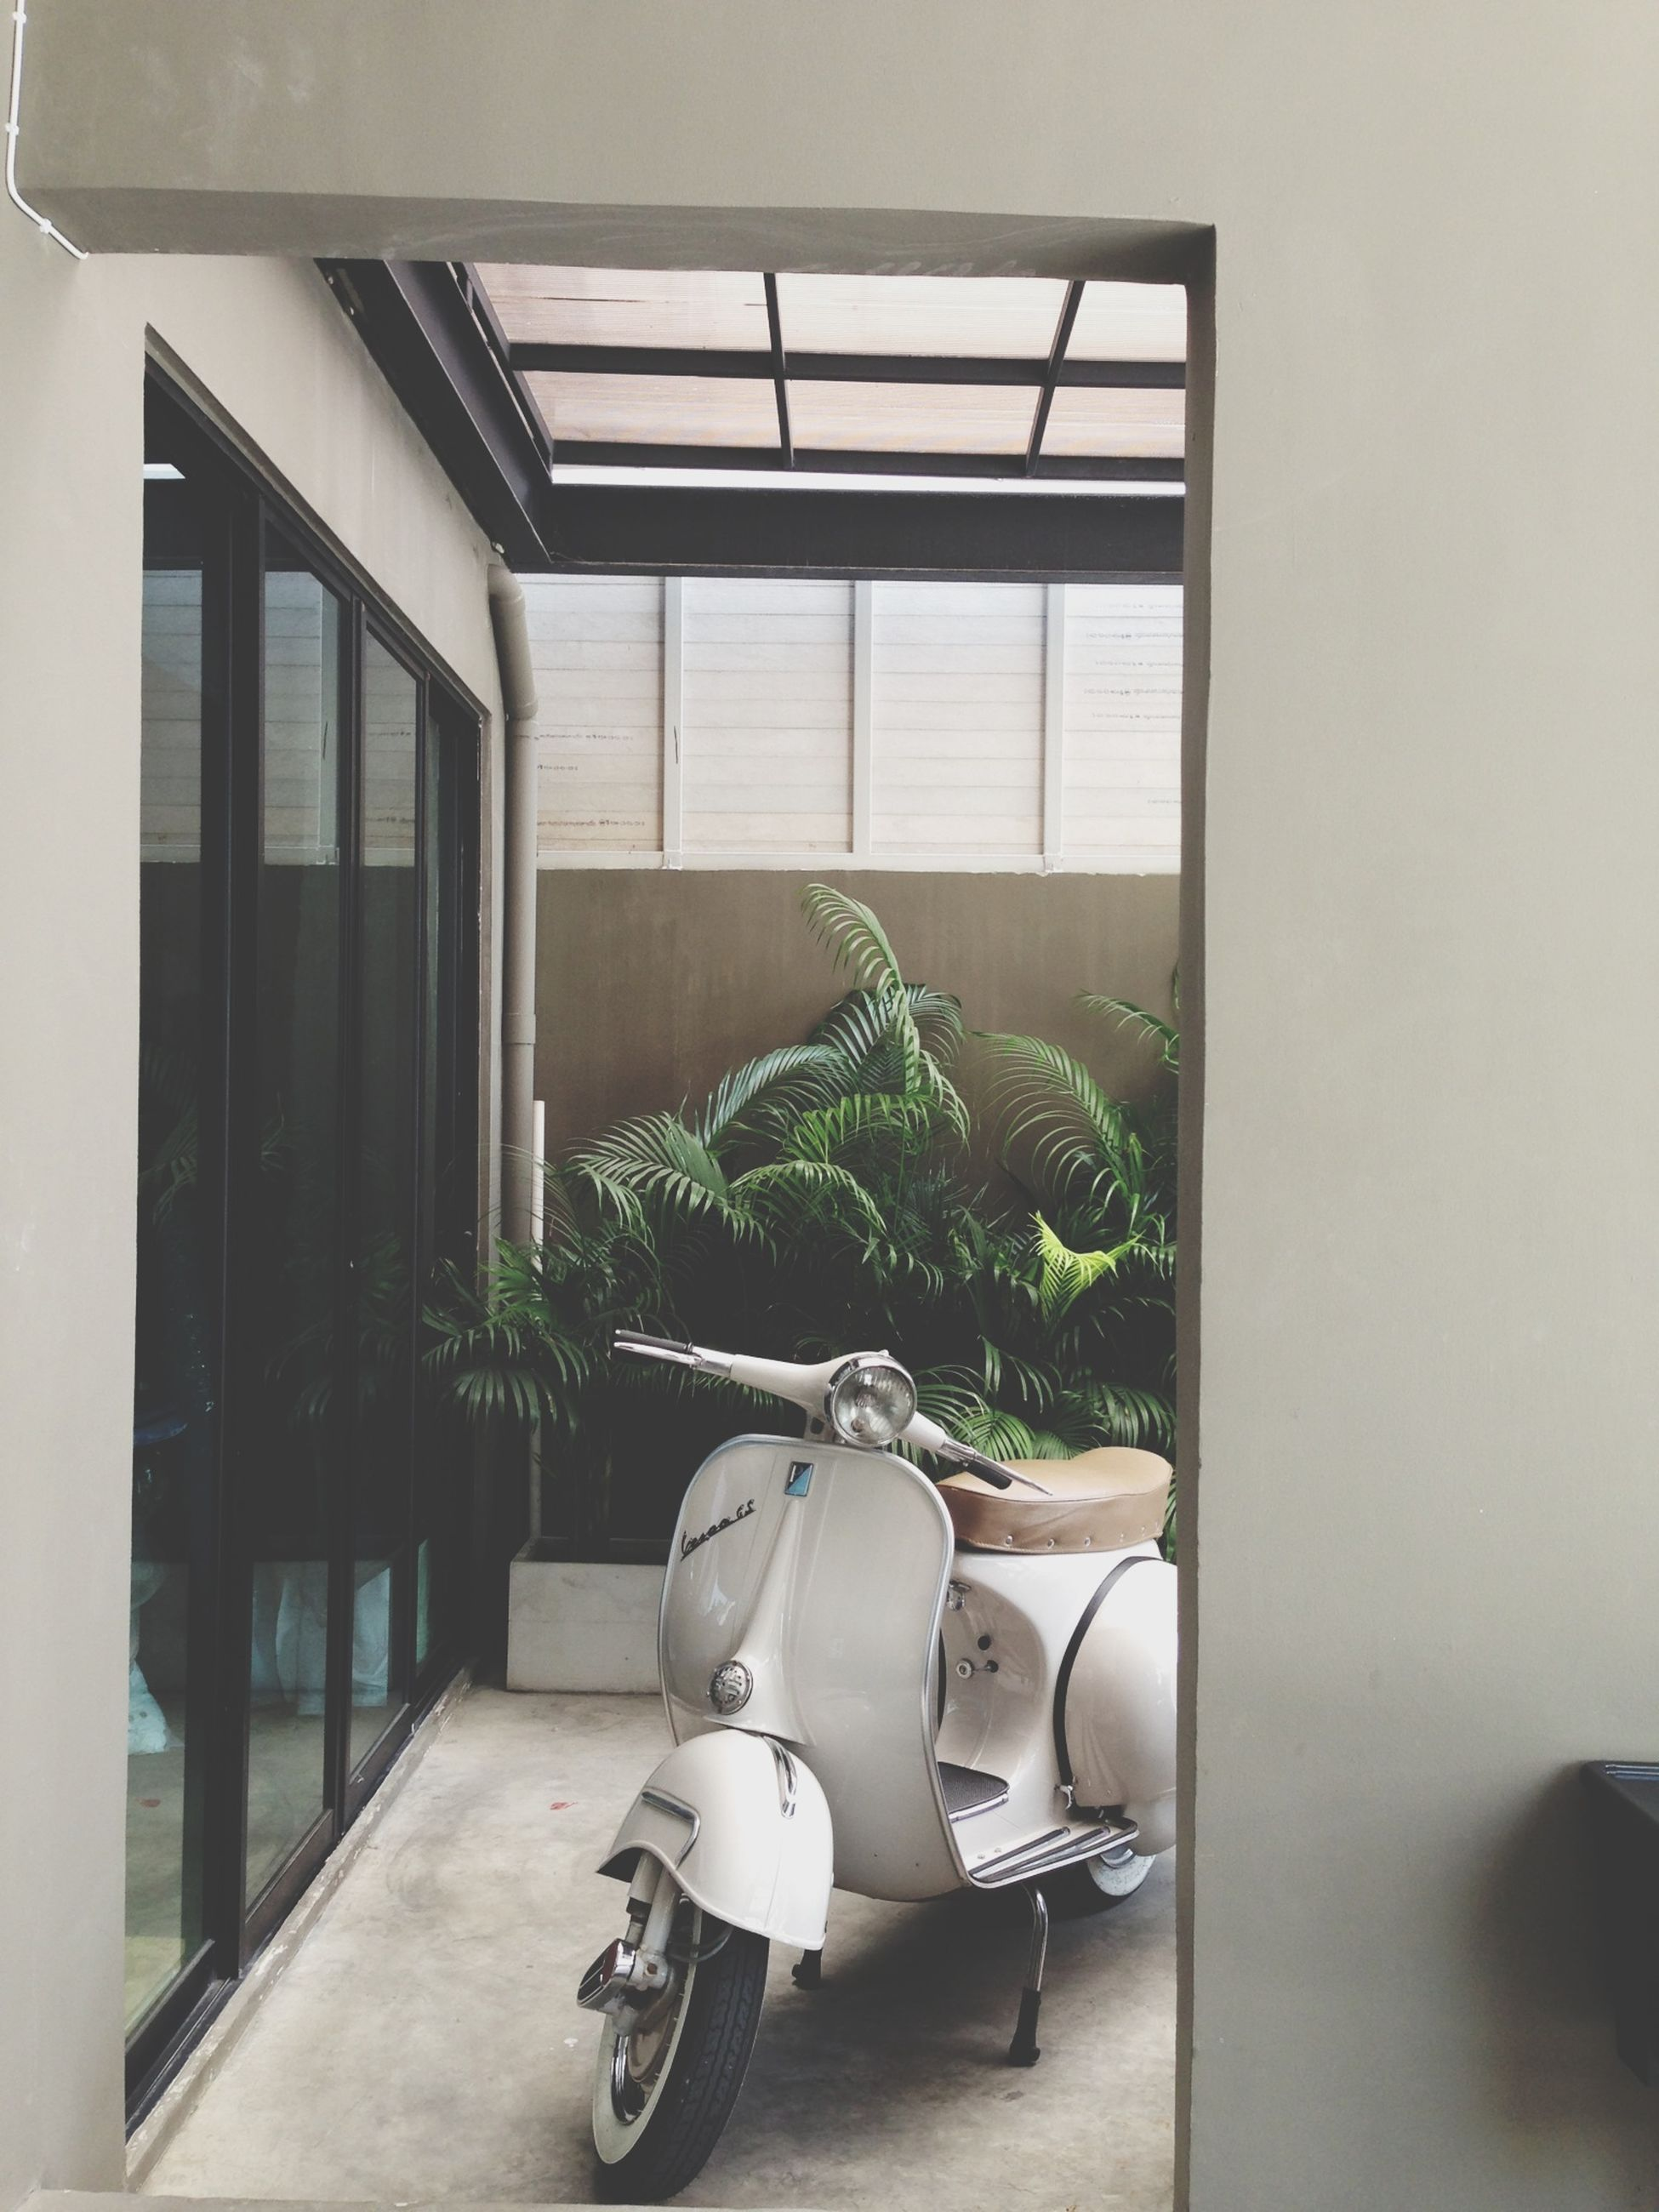 architecture, built structure, window, potted plant, indoors, building exterior, plant, bicycle, house, day, wall, wall - building feature, growth, chair, building, table, flower, sunlight